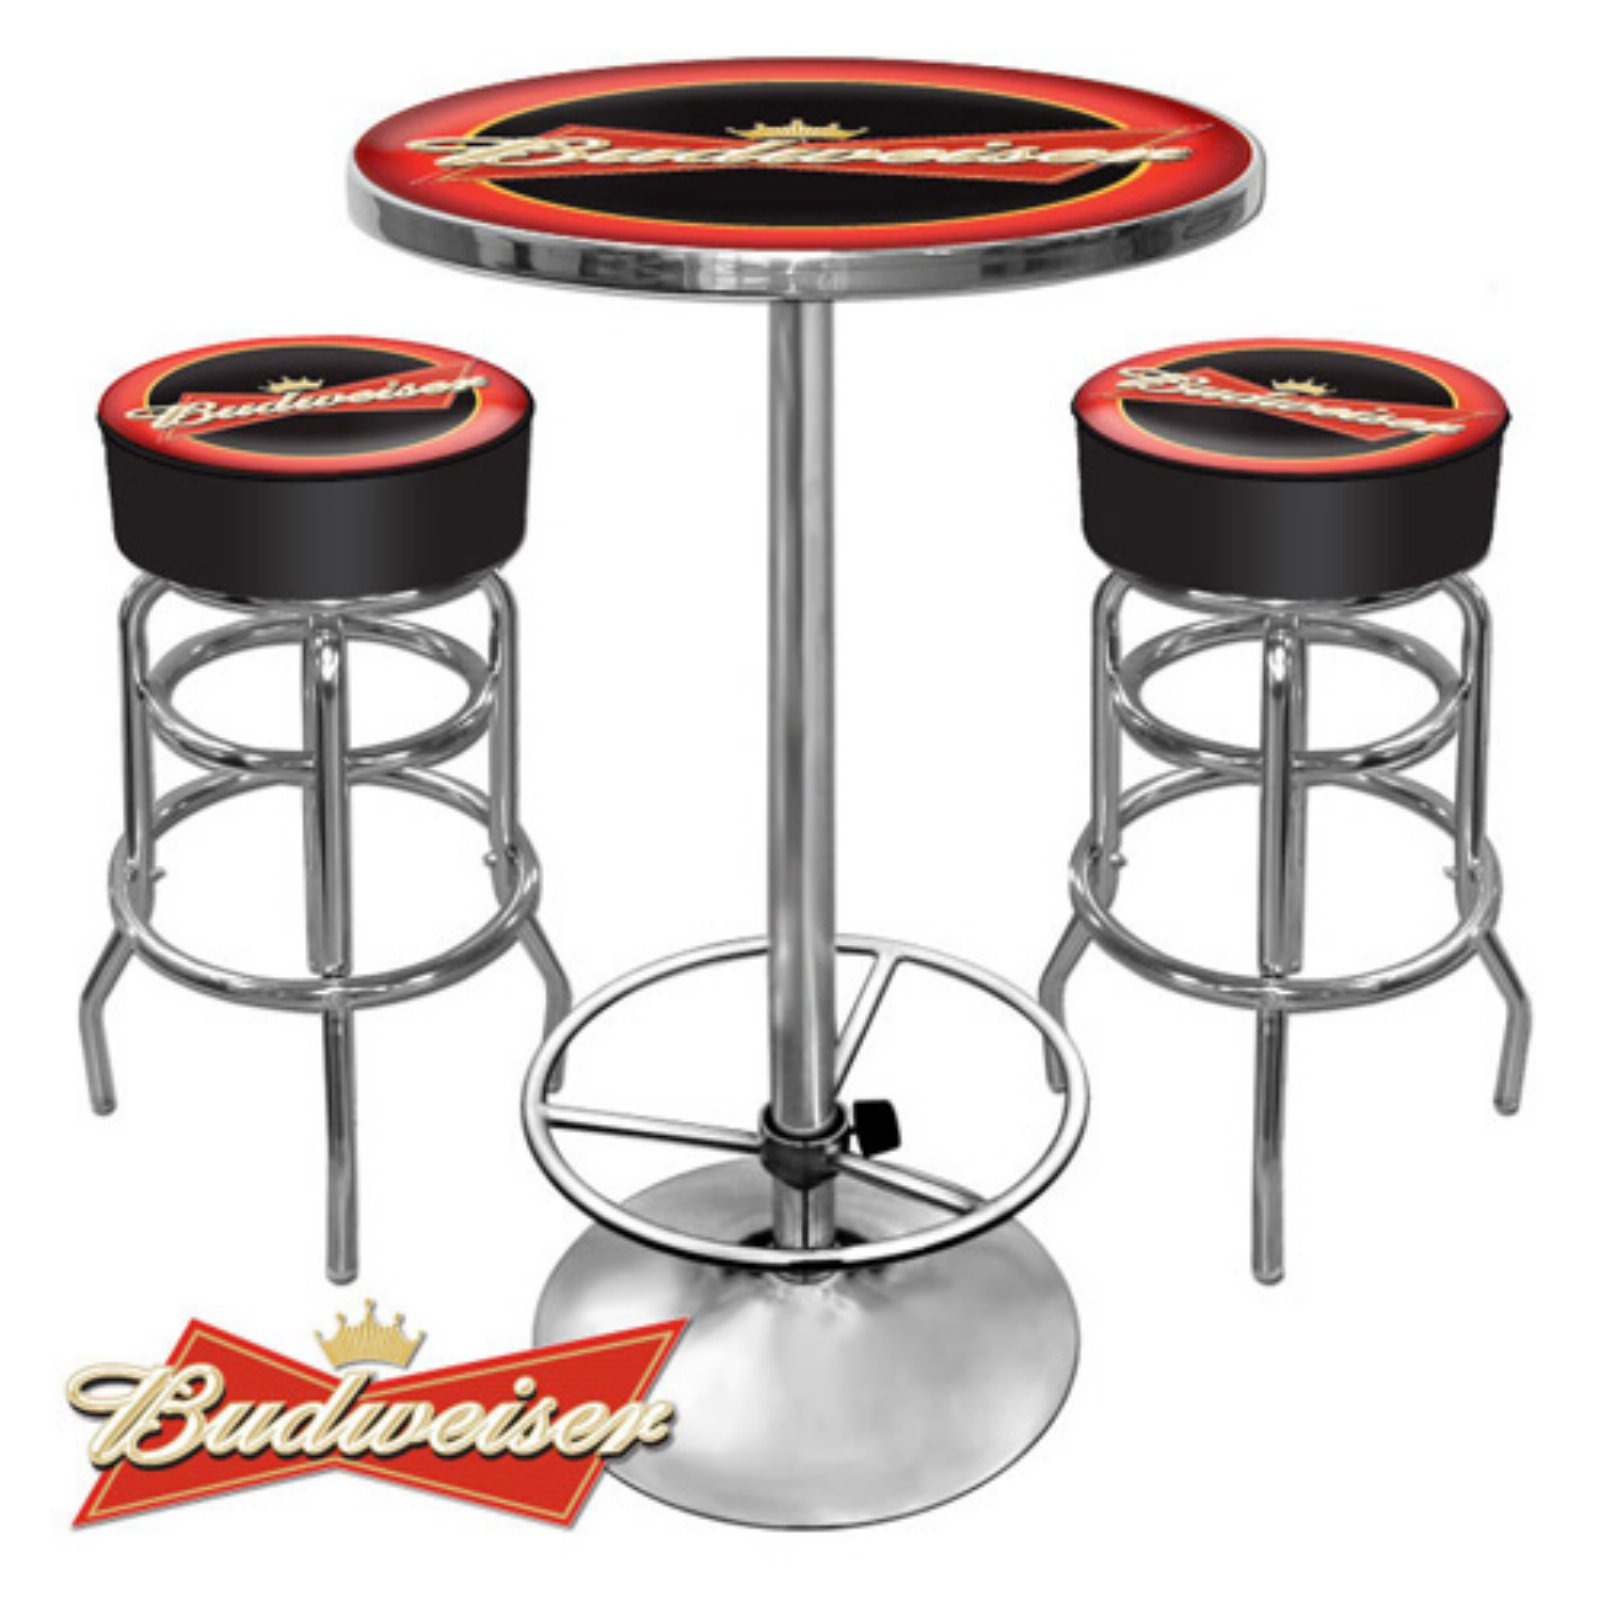 Budweiser Red Black Gameroom Pub Set 3 Piece In 2020 With